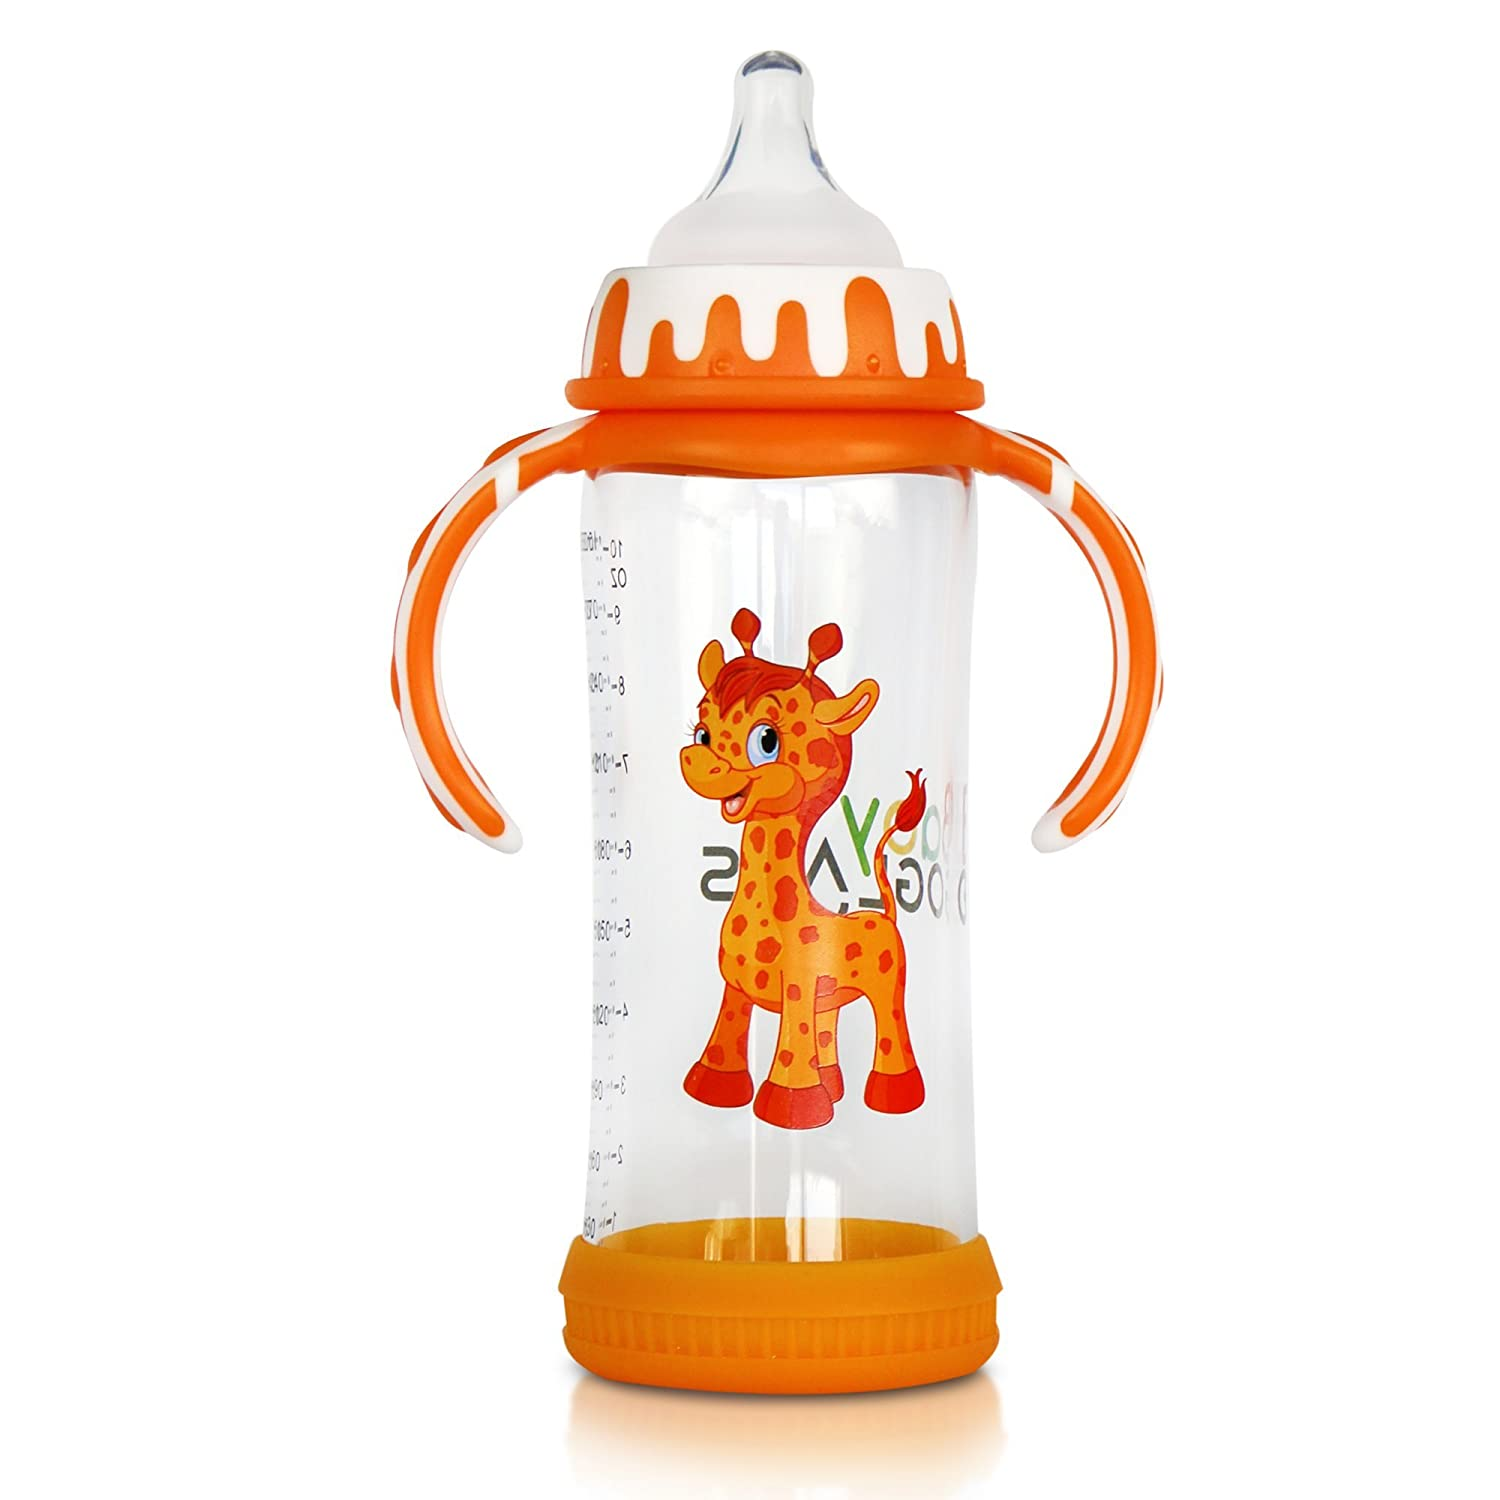 Top 9 Best Glass Baby Bottles For Infants (2020 Reviews) 9